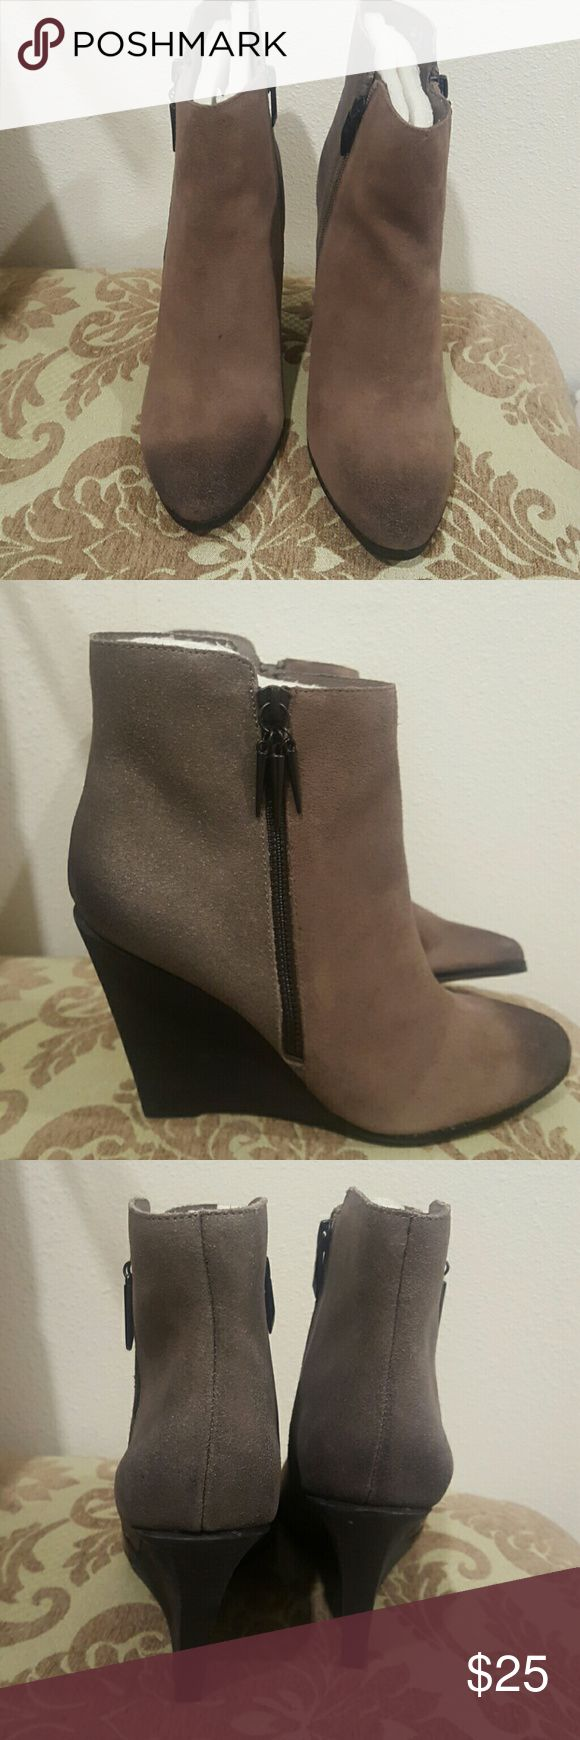 Fergie Wedge Shoes Two tone distressed wedges Fergie Shoes Wedges